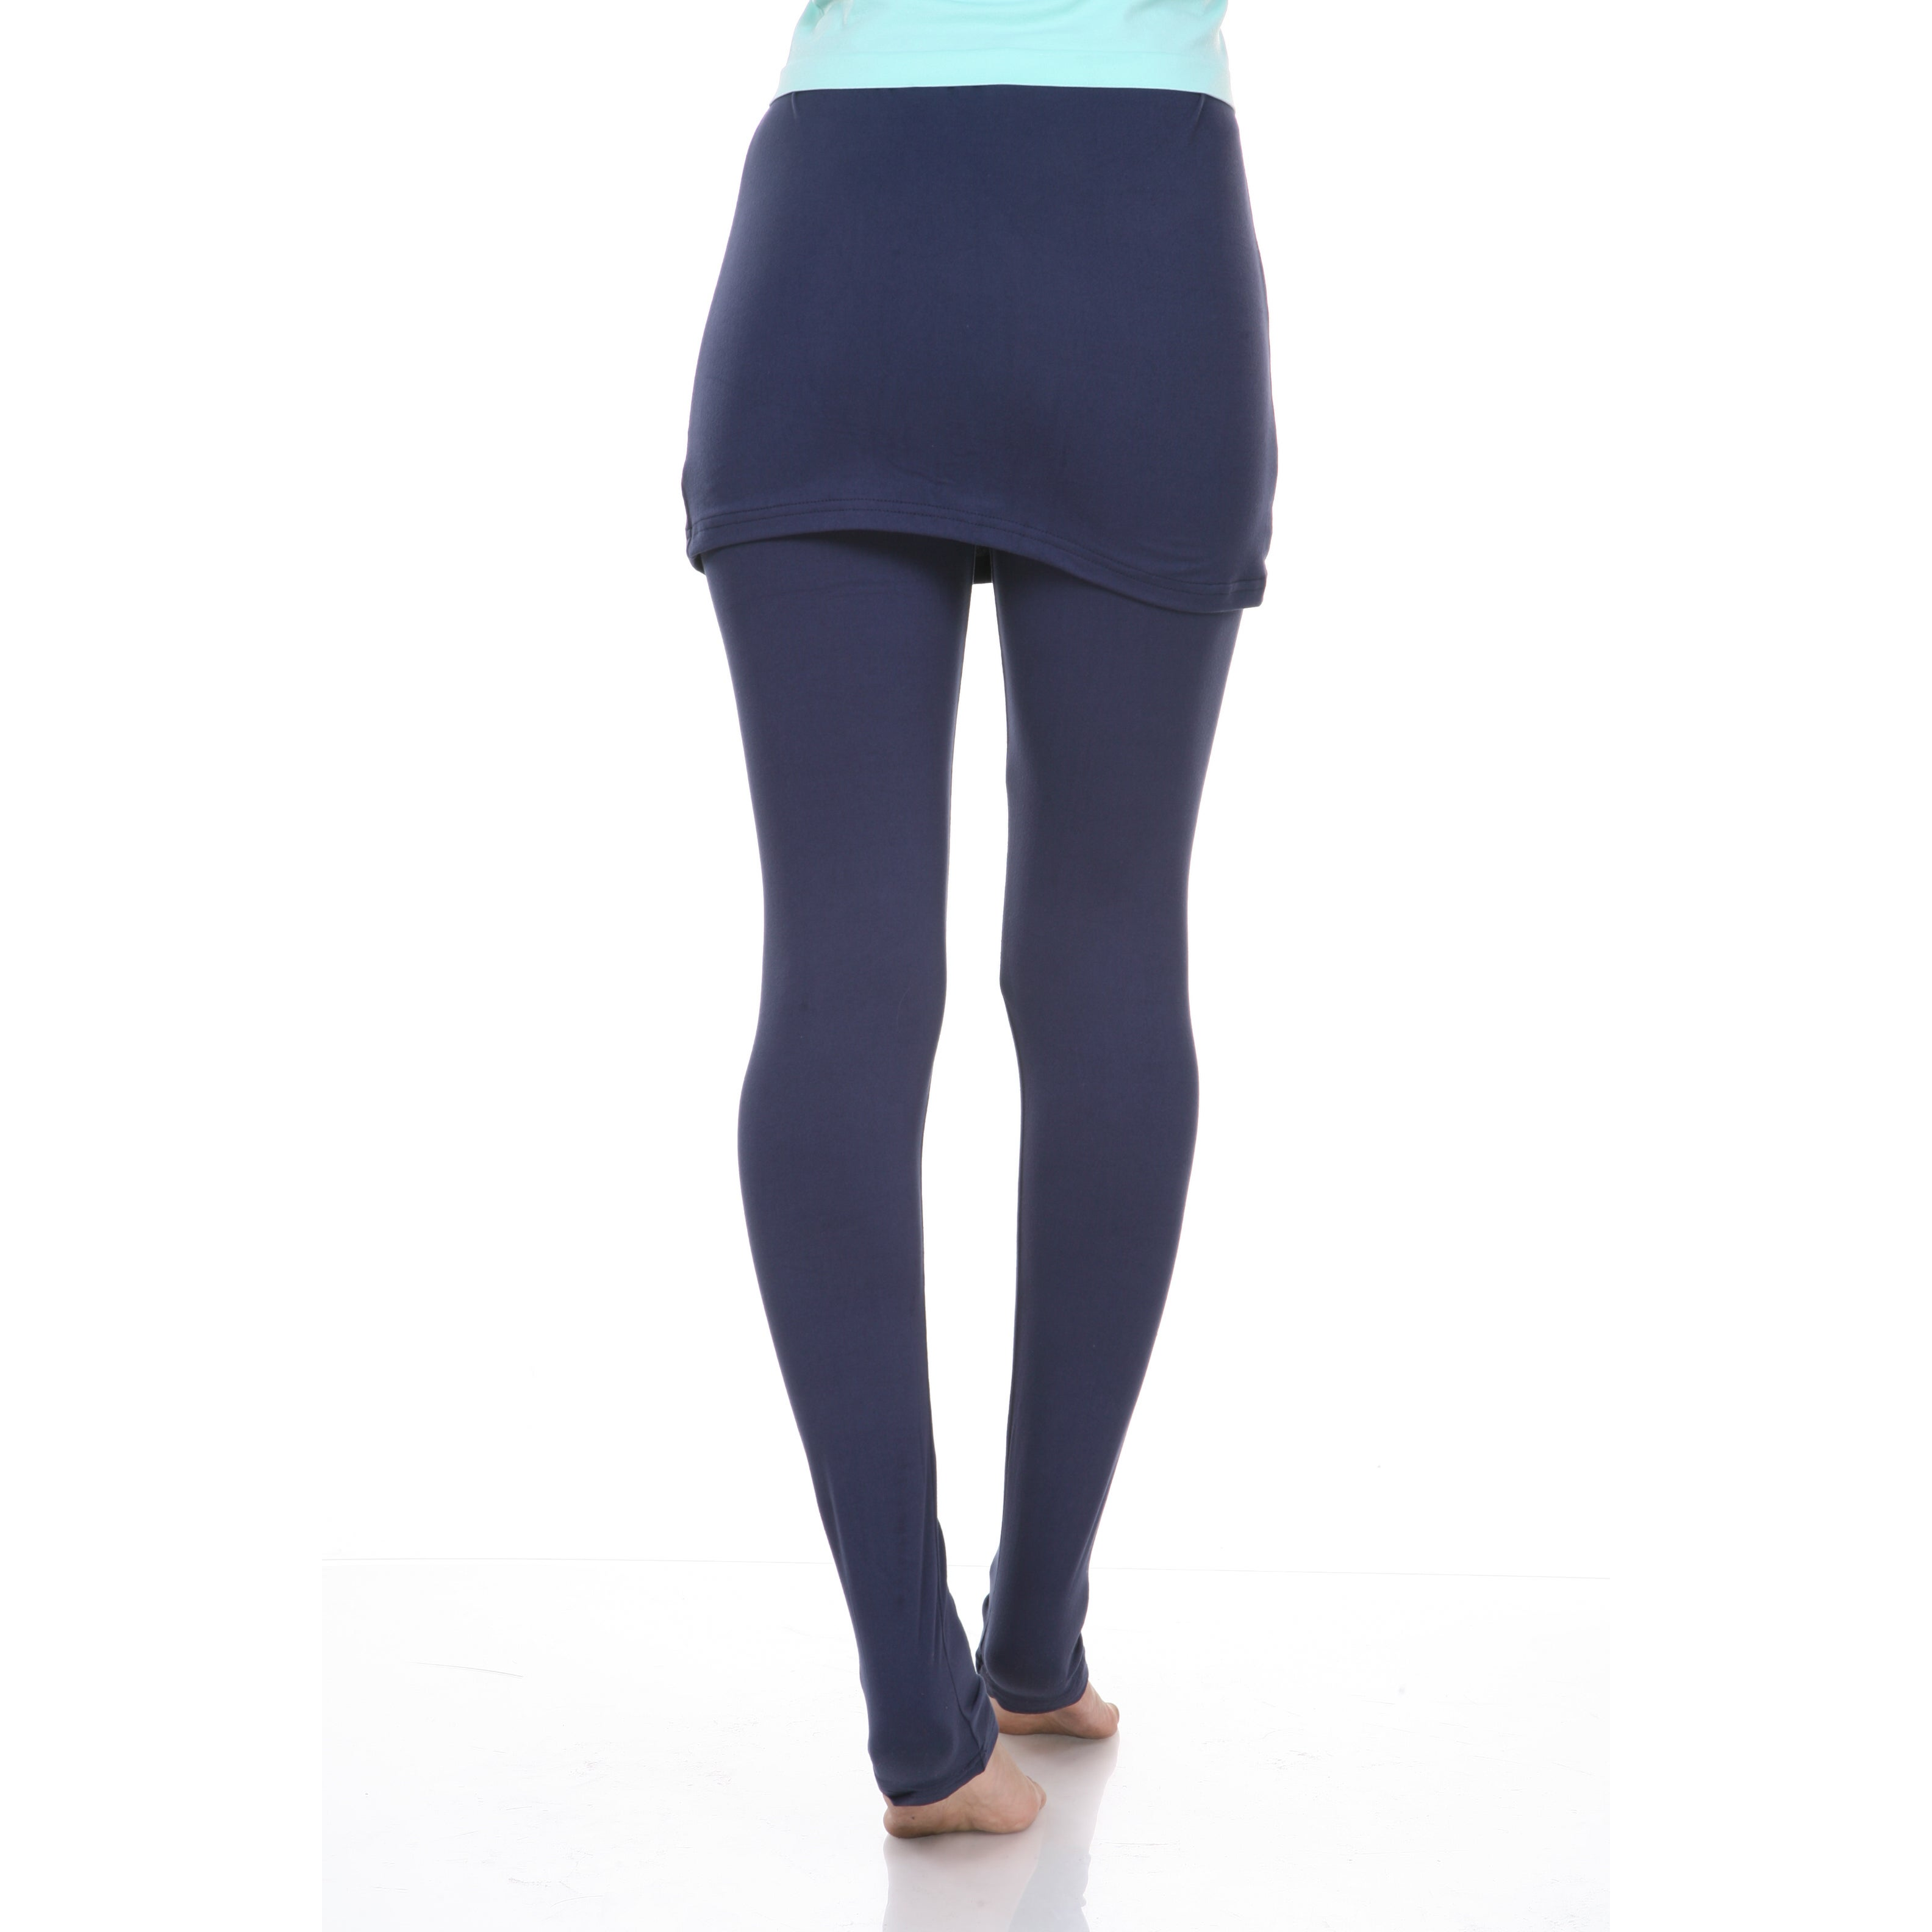 b47652c1af Shop White Mark Women's Skirted Leggings - On Sale - Free Shipping On  Orders Over $45 - Overstock - 9602763